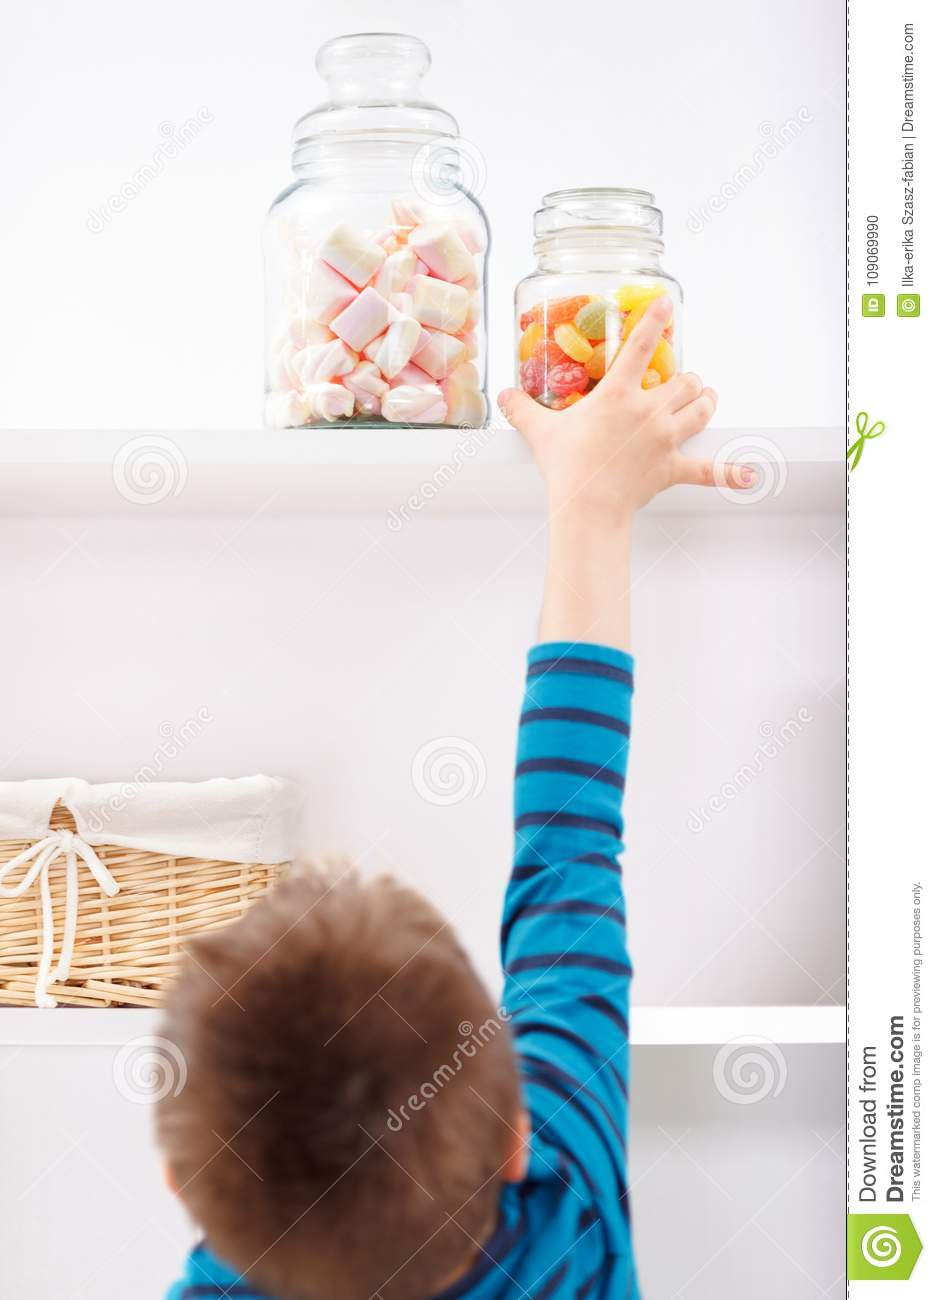 Candy Shelf Stock Photos - Royalty Free Pictures